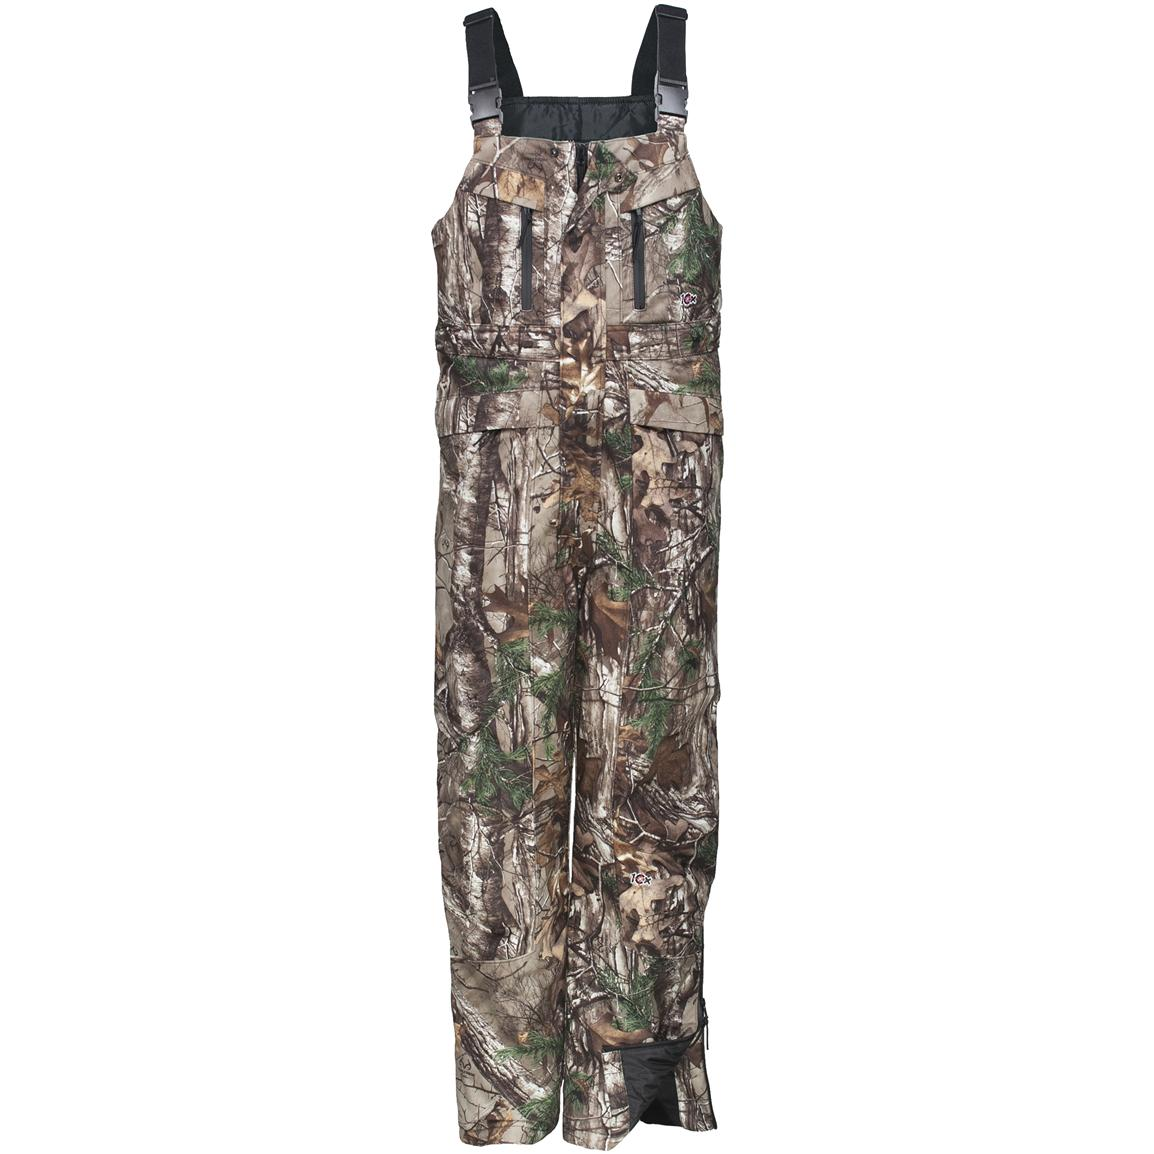 Walls® 10X® Thinsulate™ Insulated Bib Overalls, Realtree Xtra